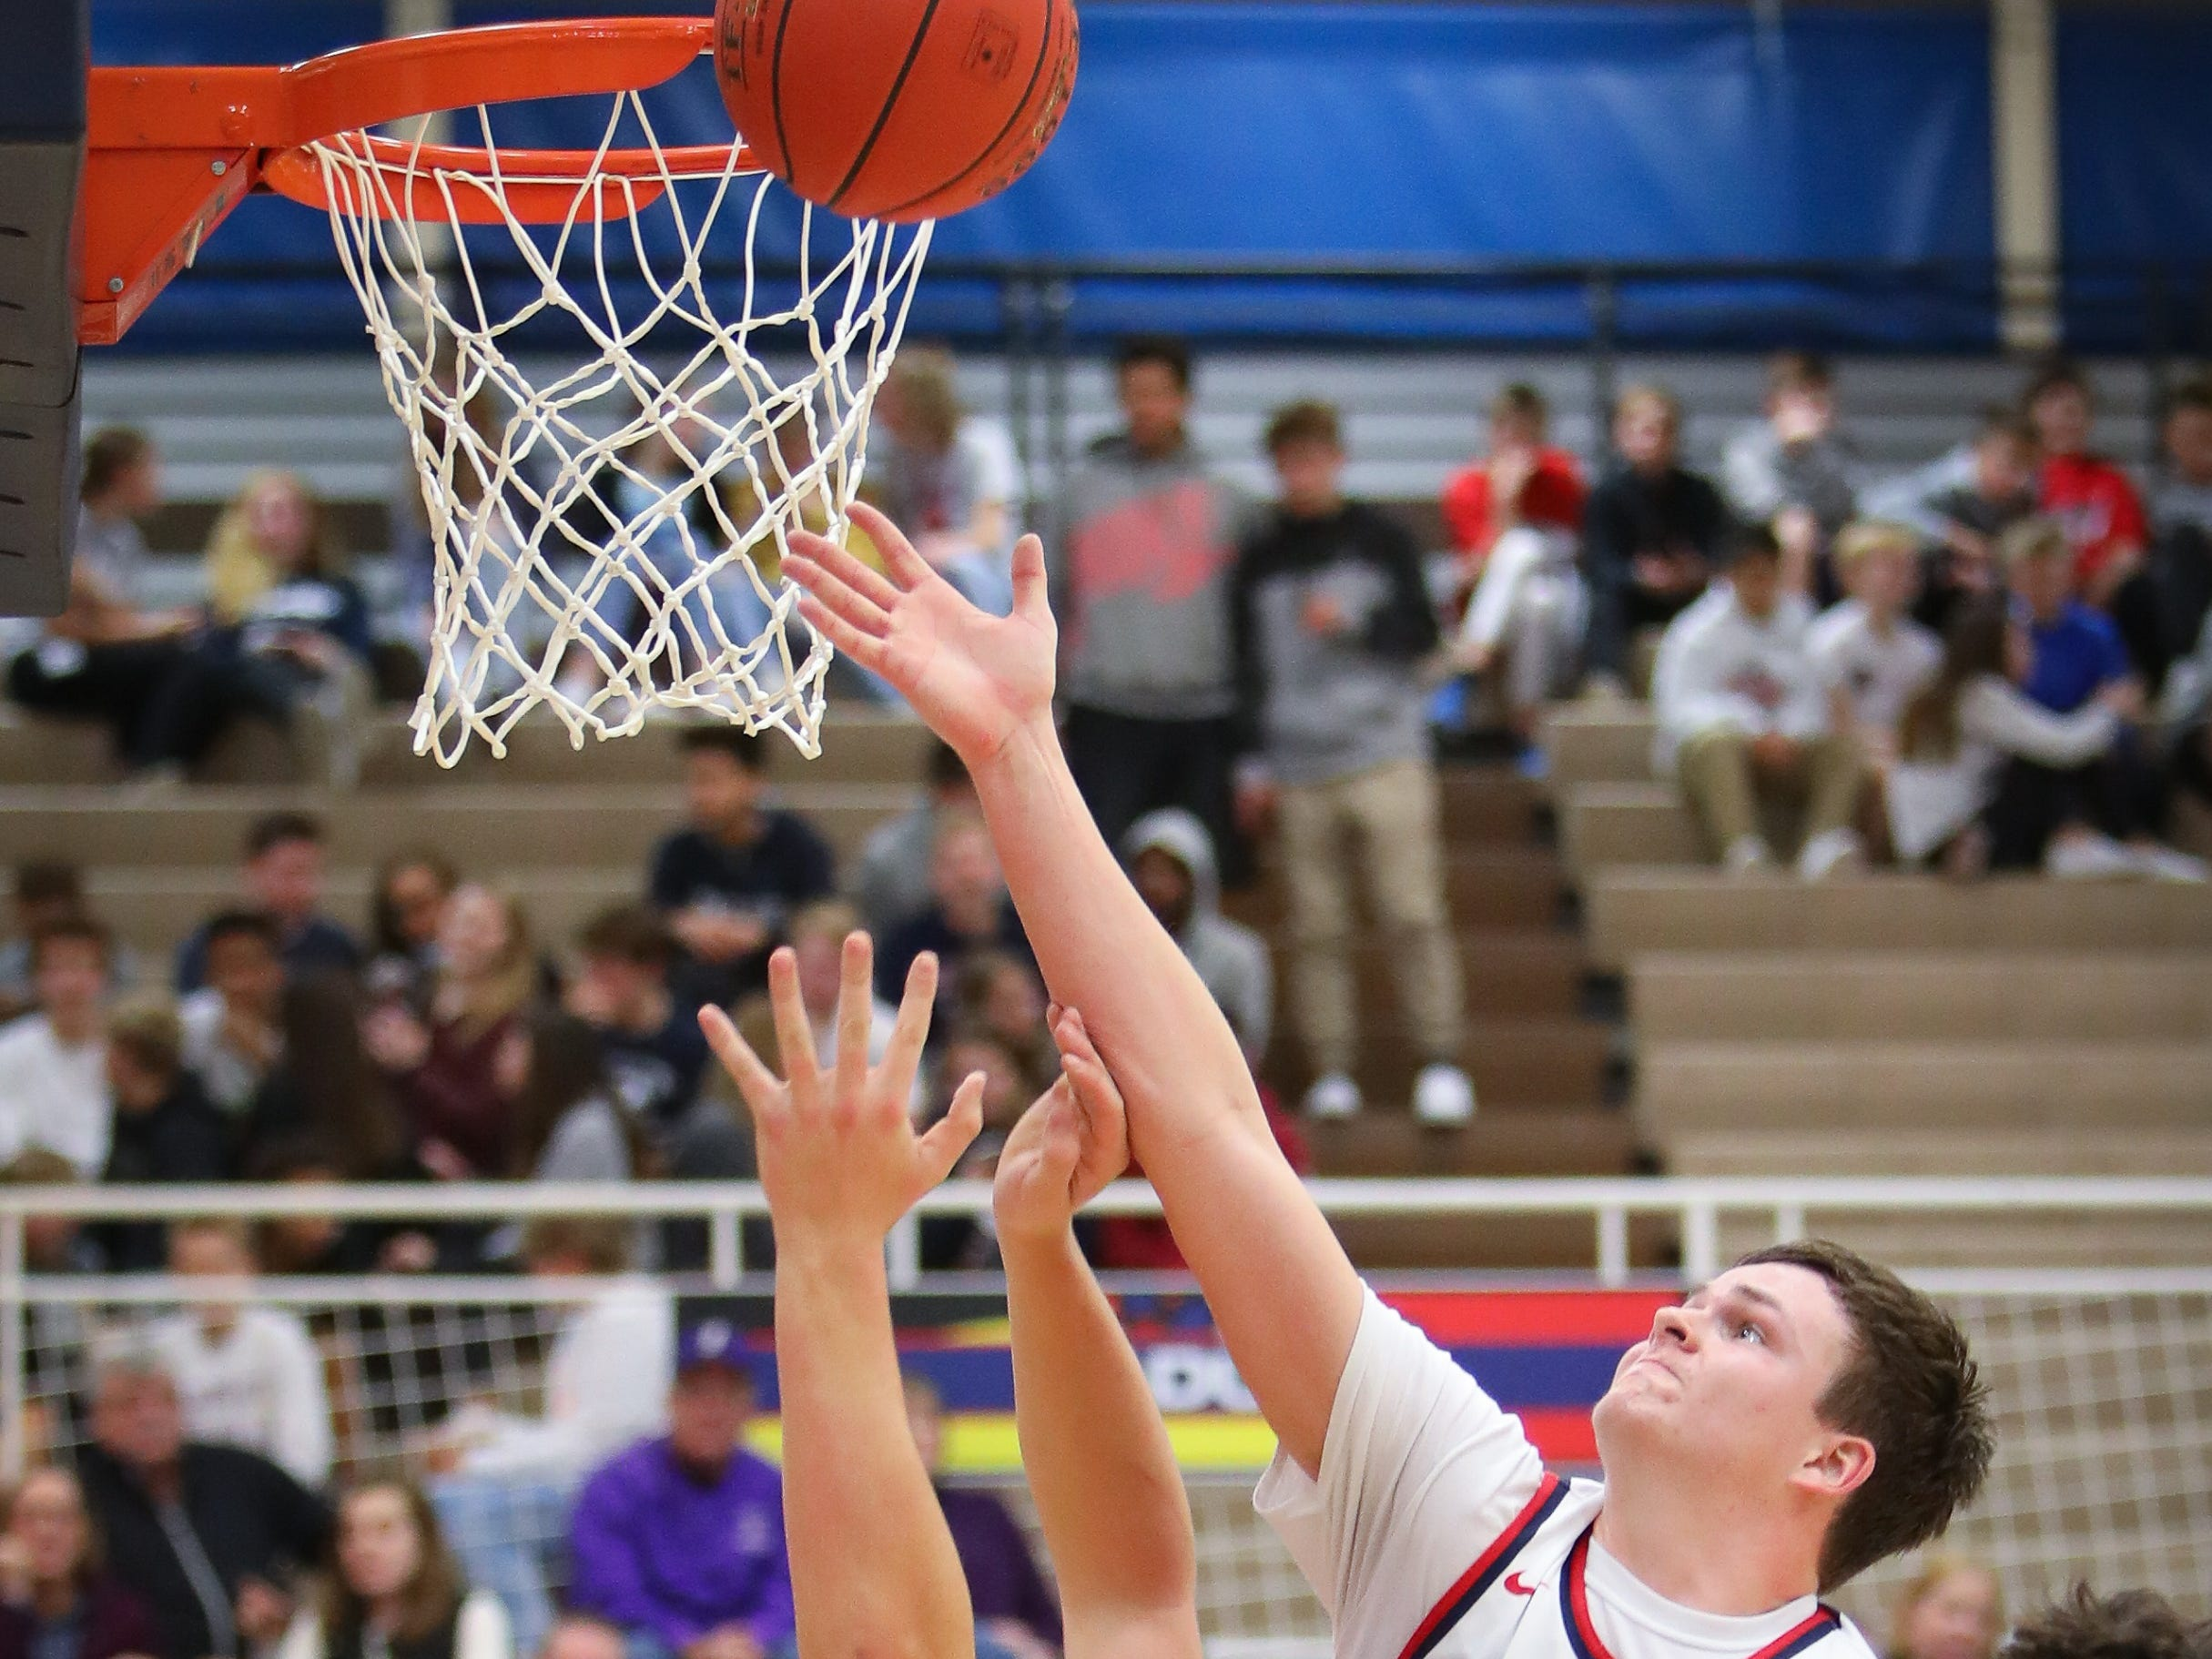 Urbandale senior Lucas Strain attempts to rebound the ball during a boys high school basketball game between the Johnston Dragons and the Urbandale J-Hawks at Urbandale High School on Dec. 18, 2018 in Urbandale, Iowa.